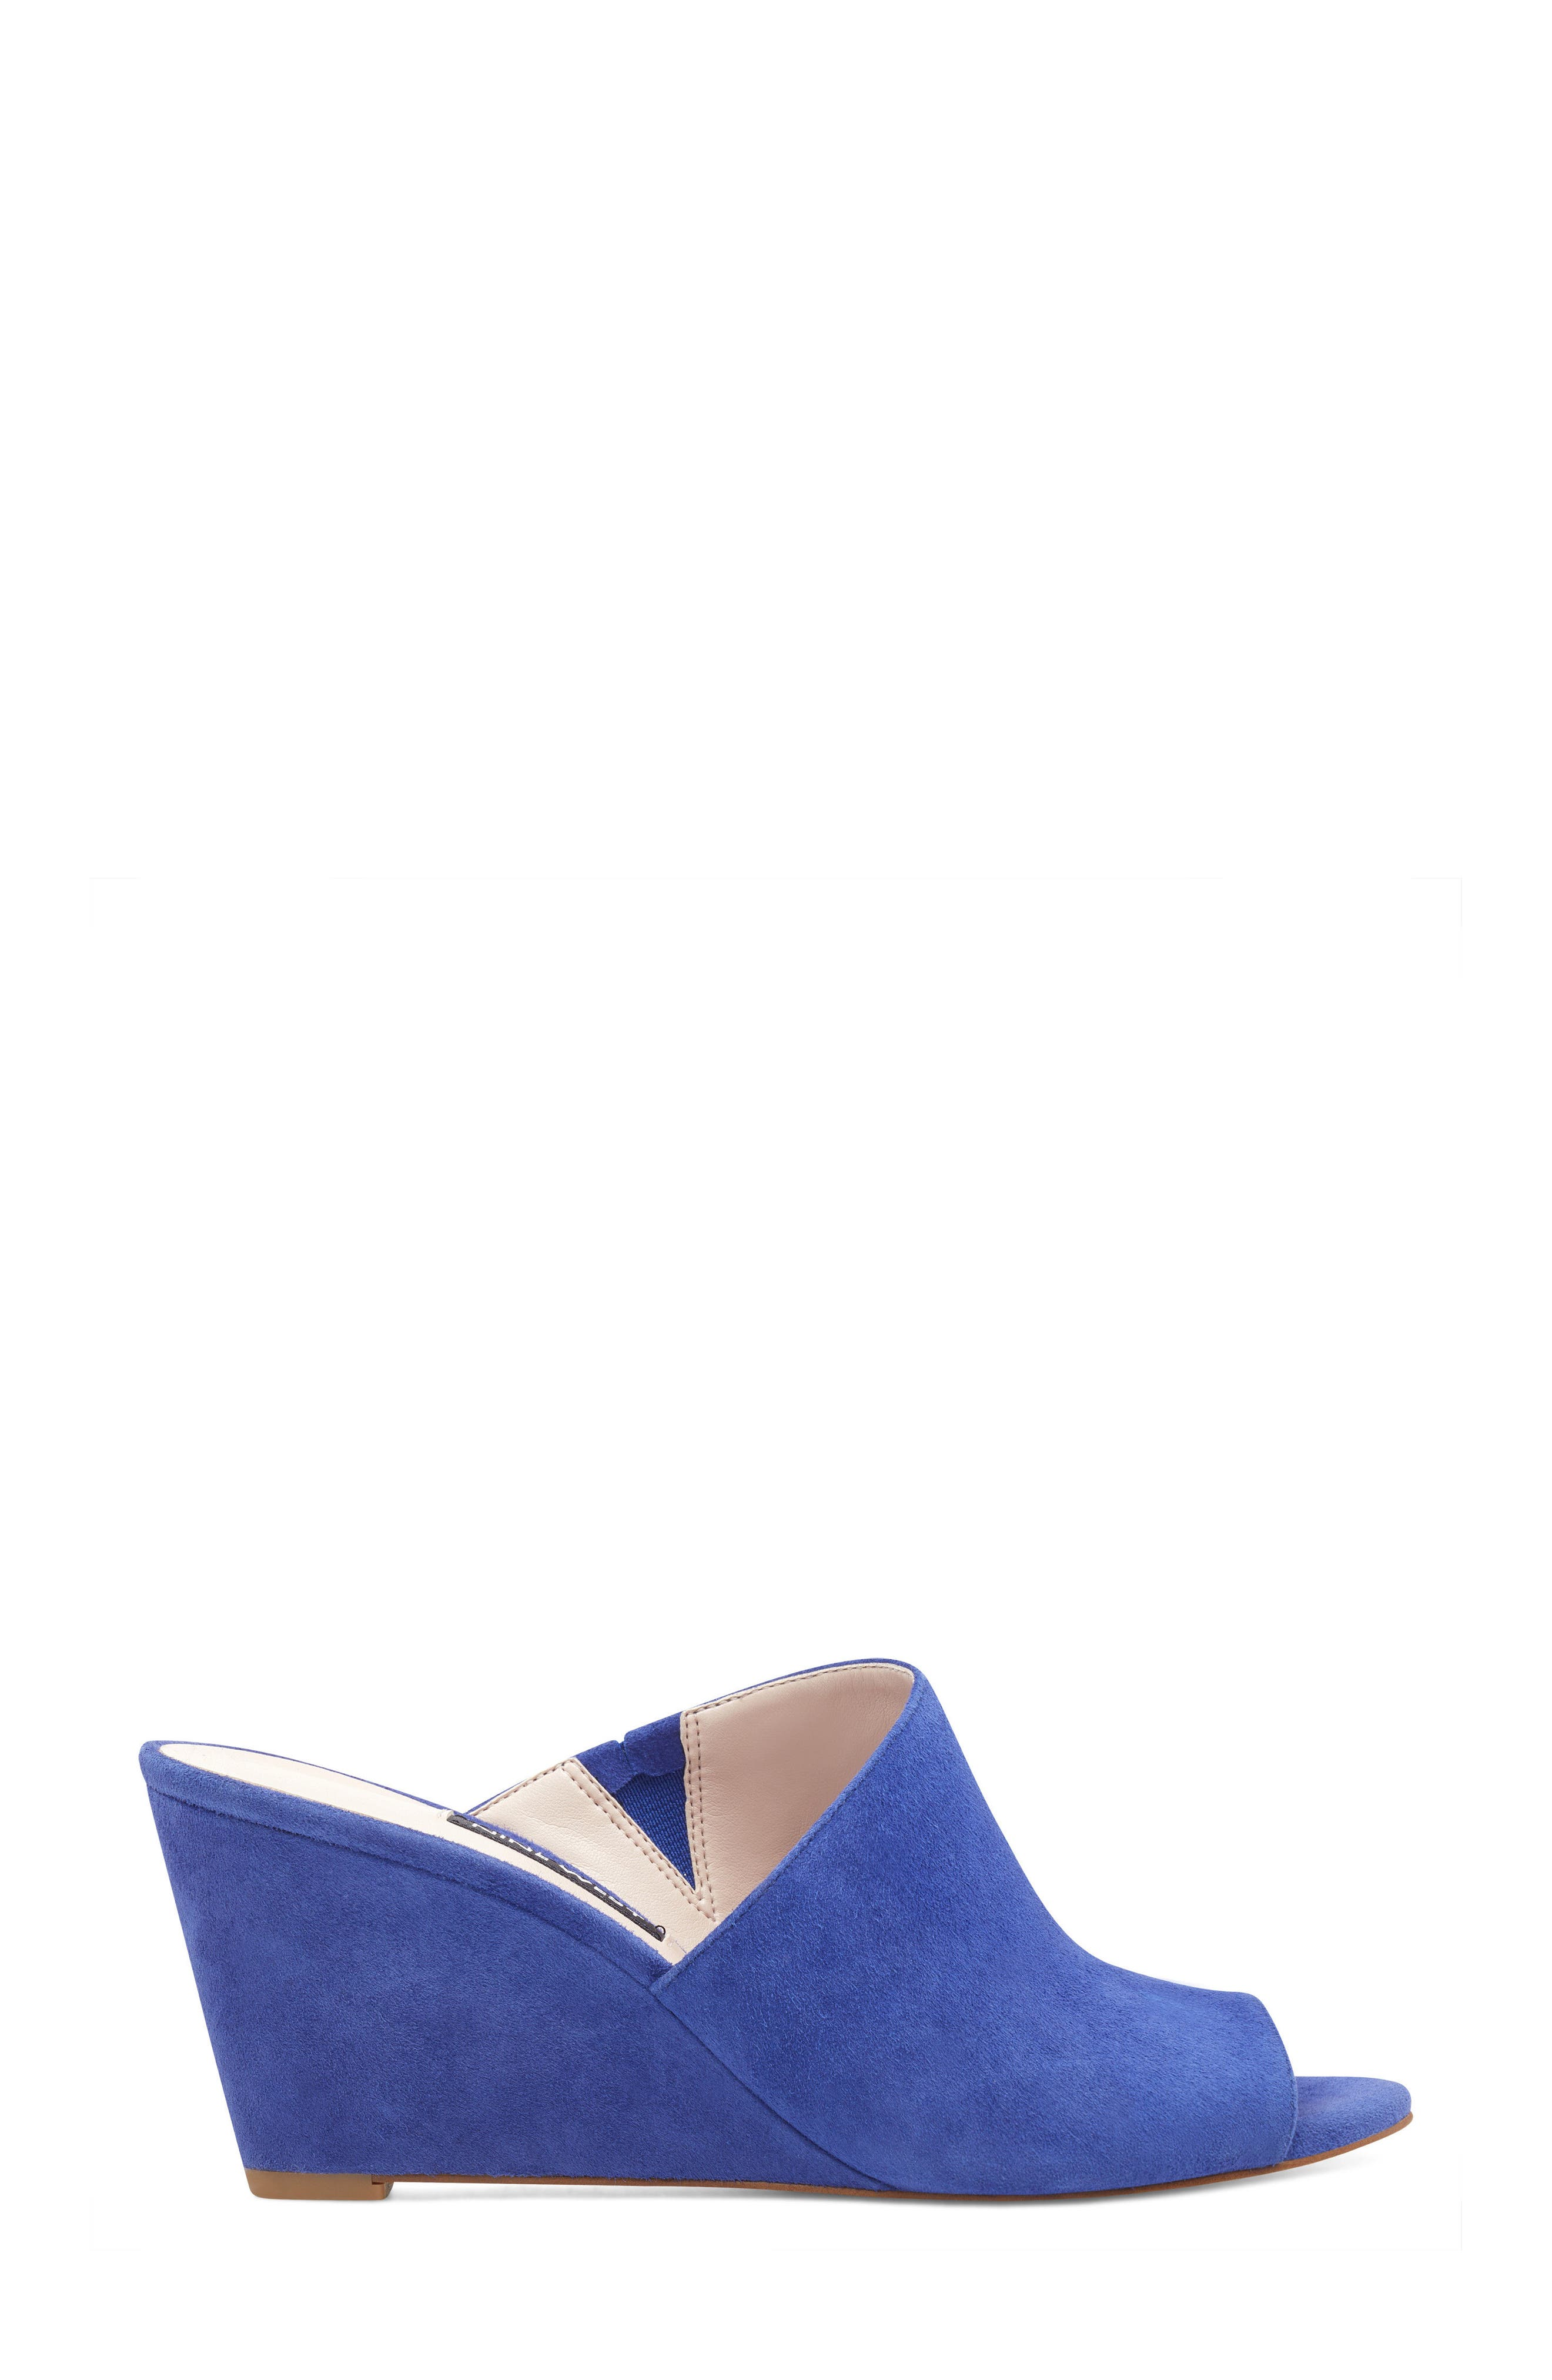 Janissah Wedge,                             Alternate thumbnail 3, color,                             DARK BLUE SUEDE